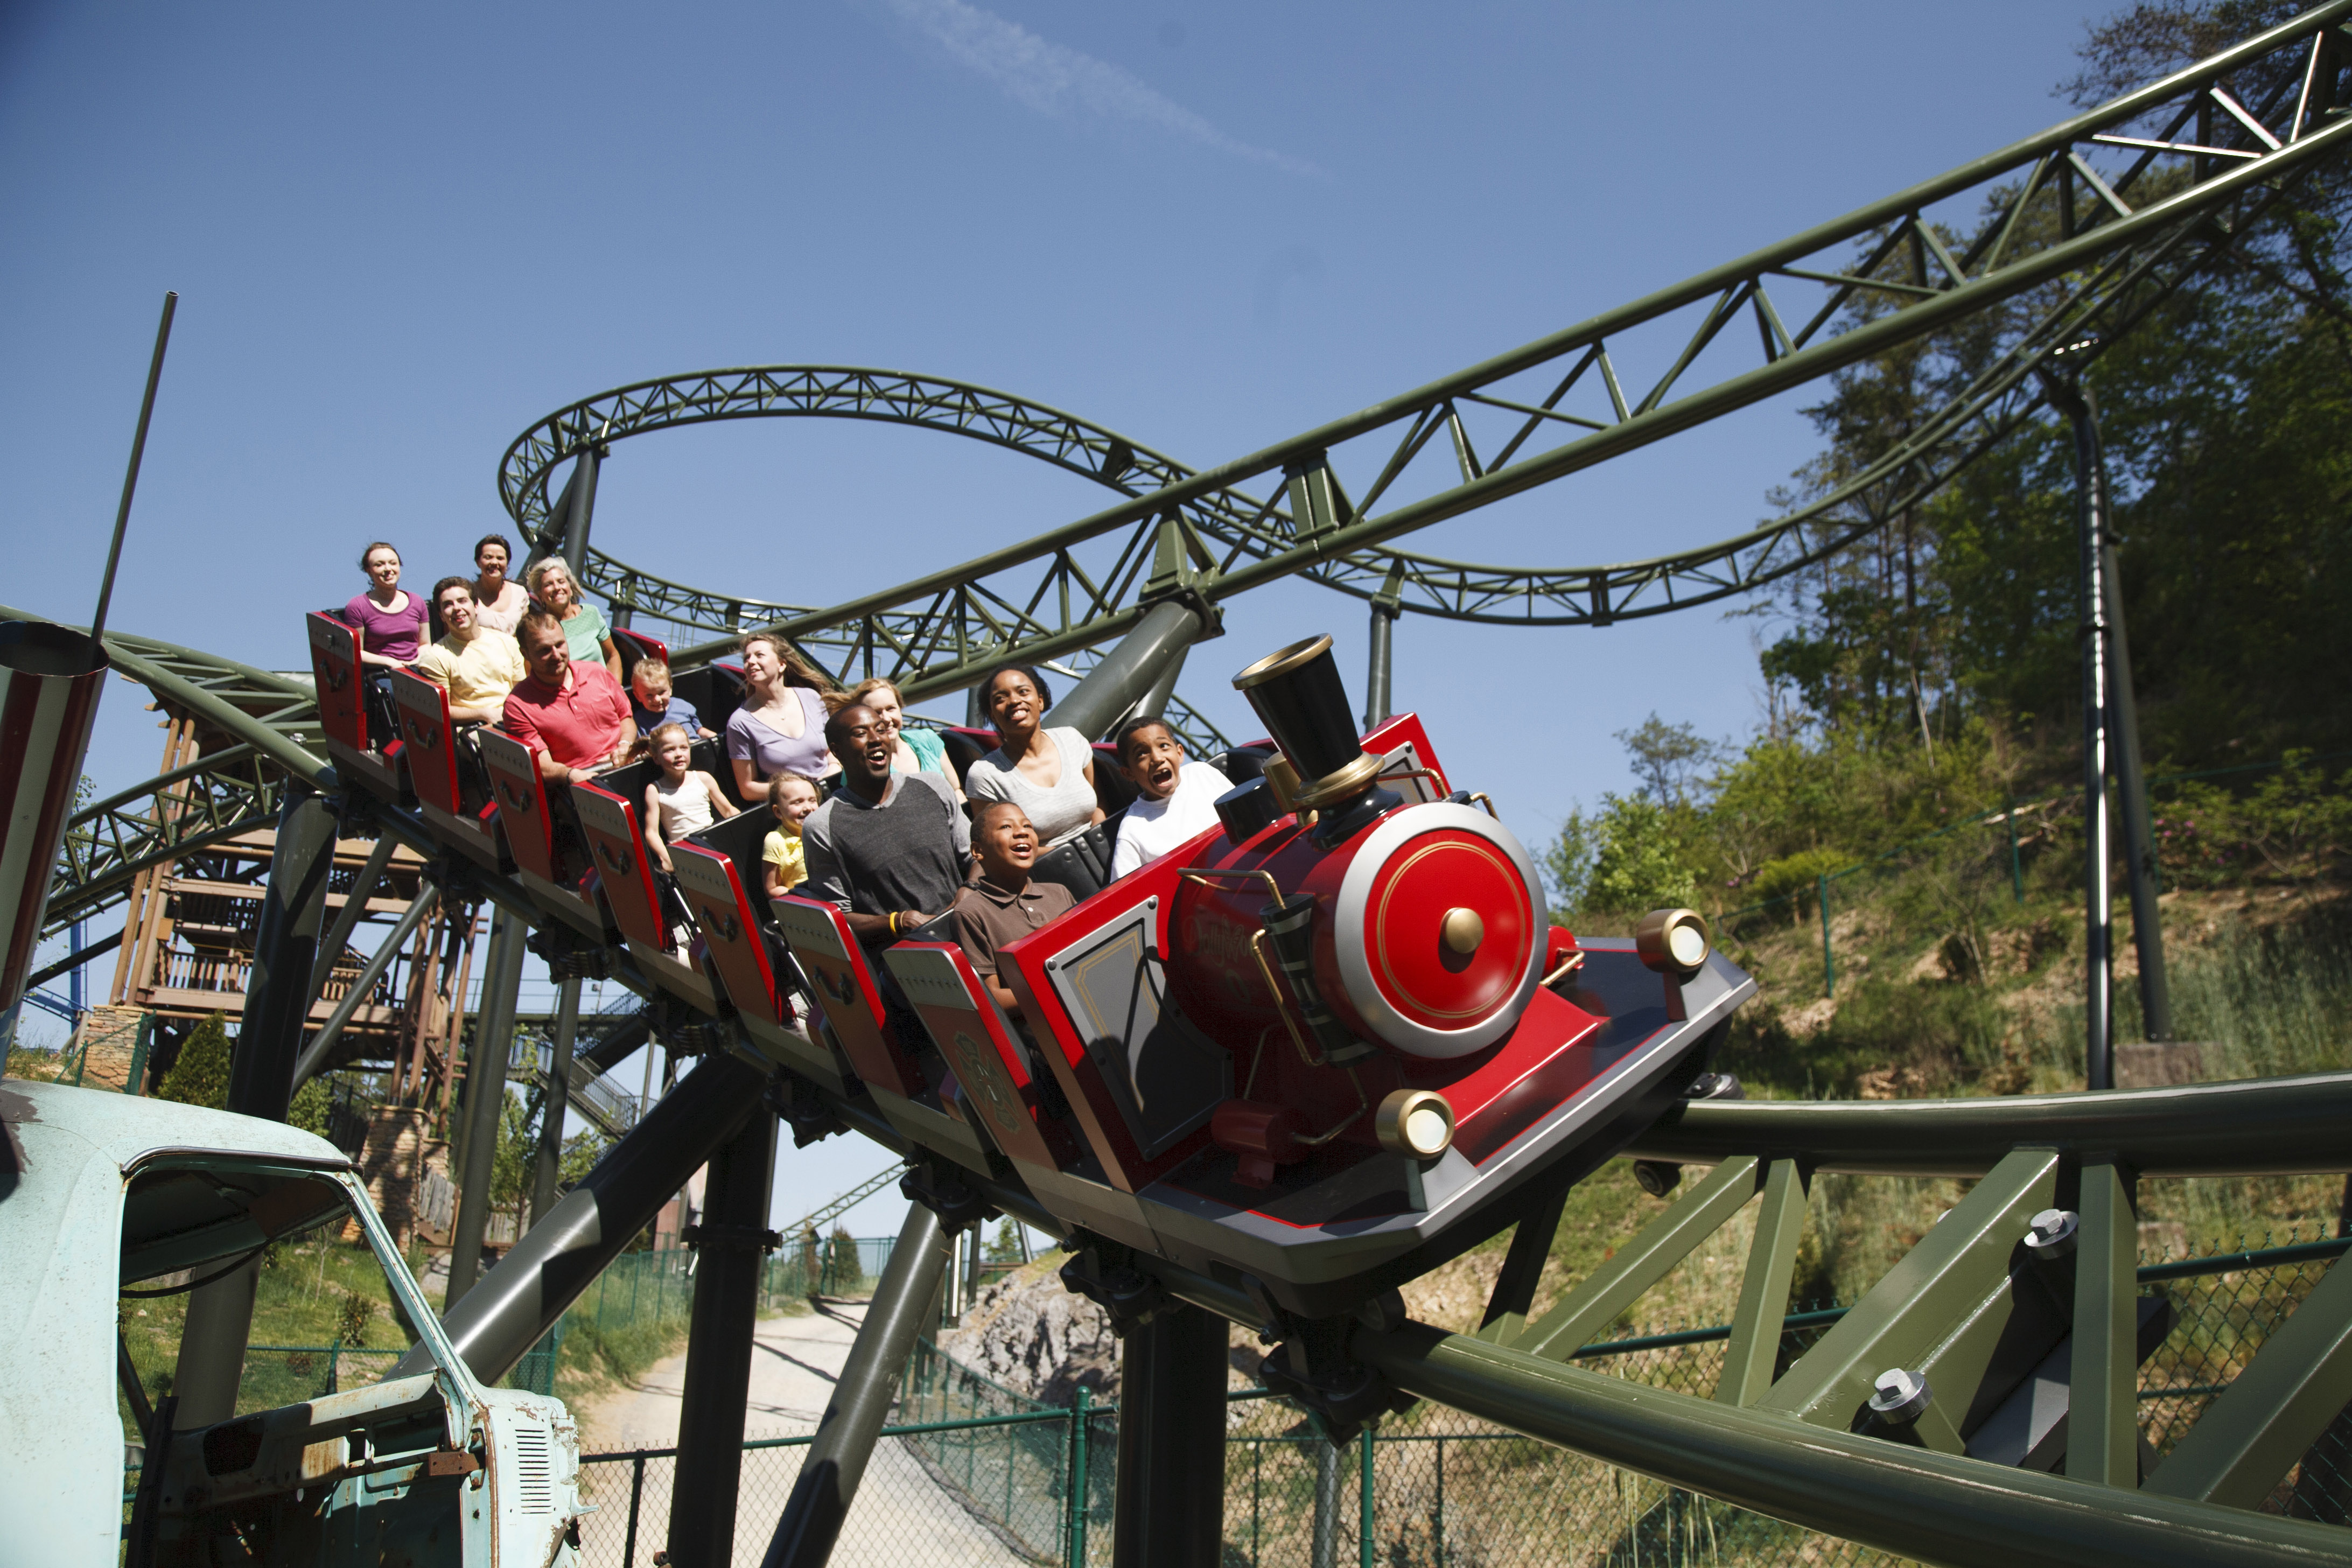 AARP Days at Dollywood Returns for 2016